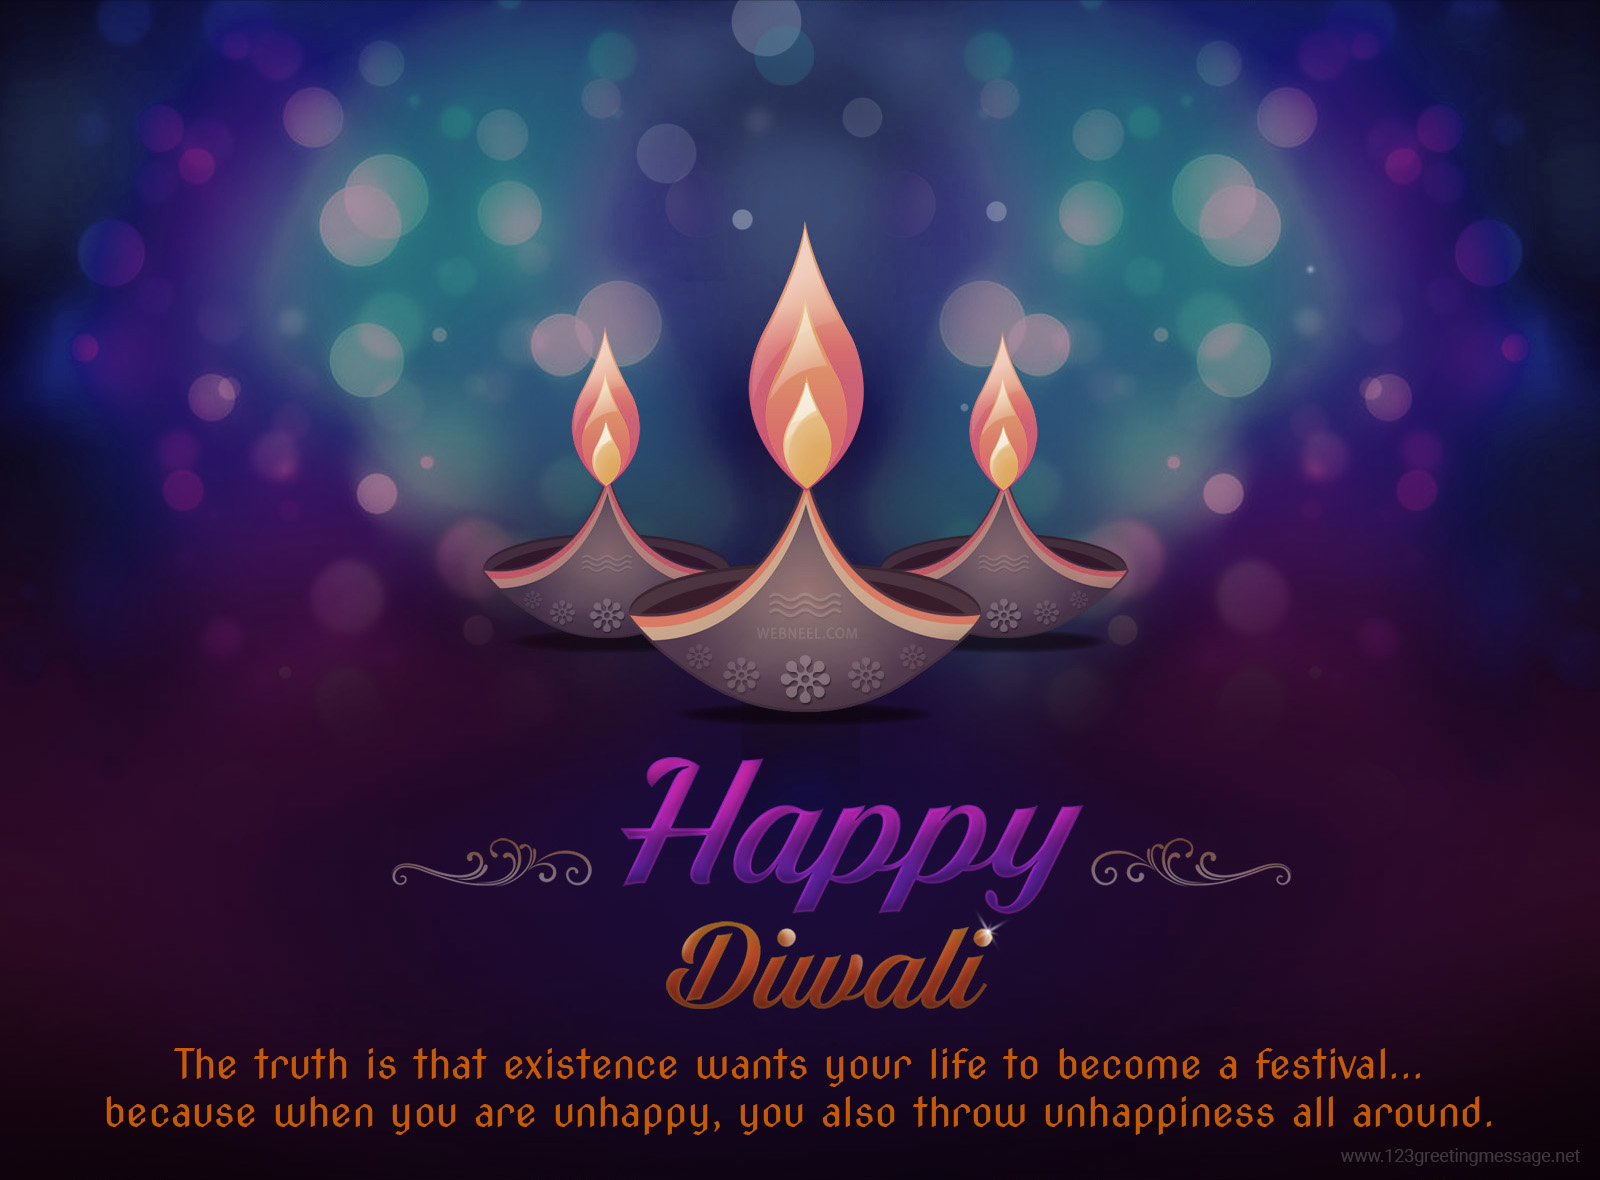 Wishing You a Very Happy and Prosperous Diwali {Deepavali} 2021